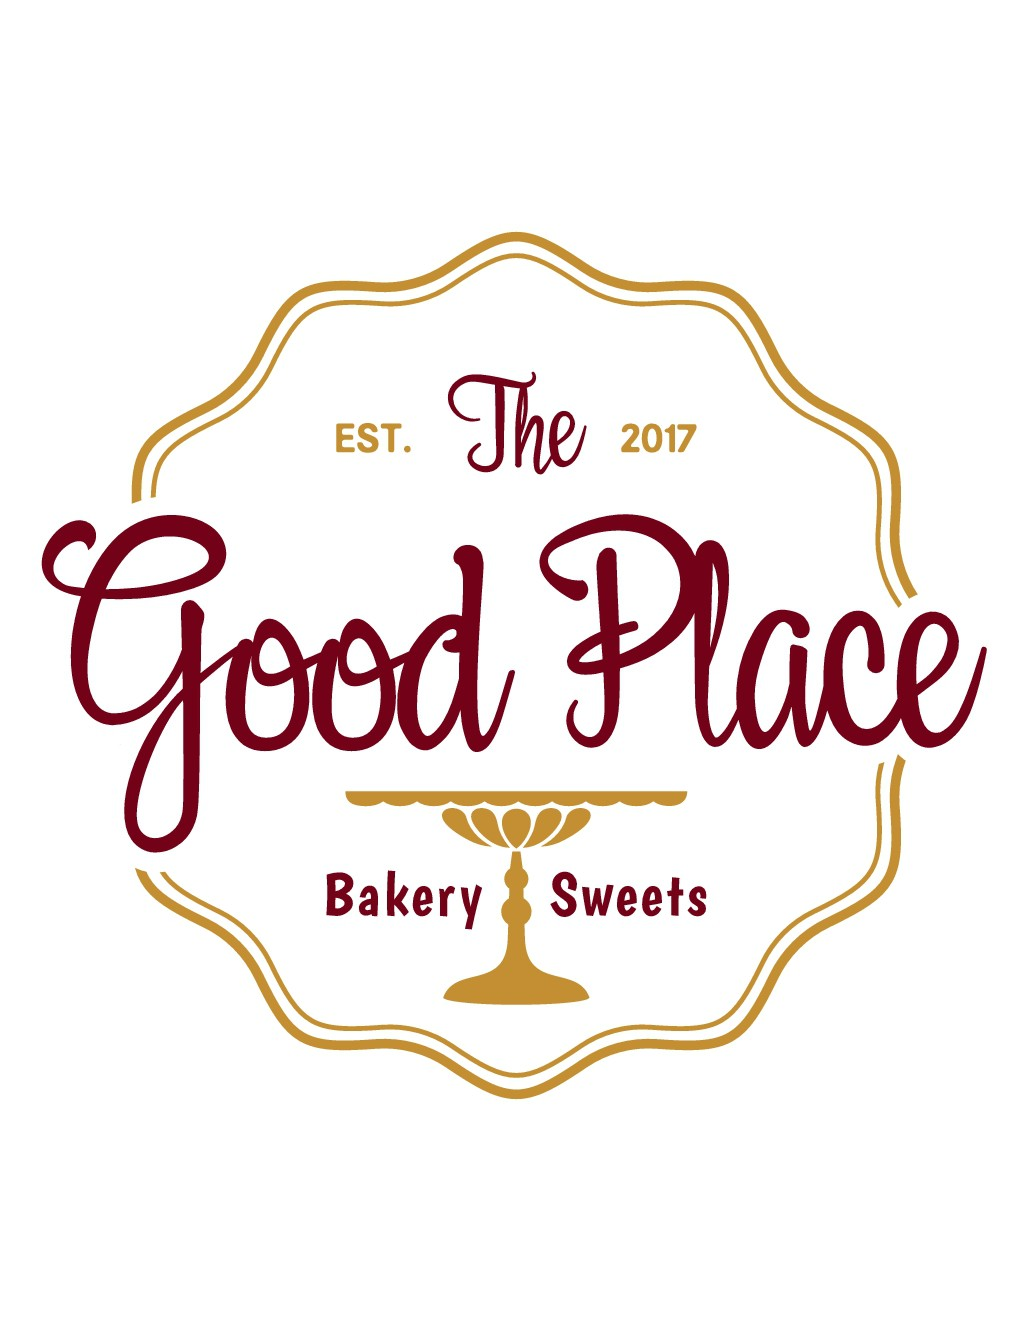 The Good Place Bakery & Sweets needs a awesome artsy logo